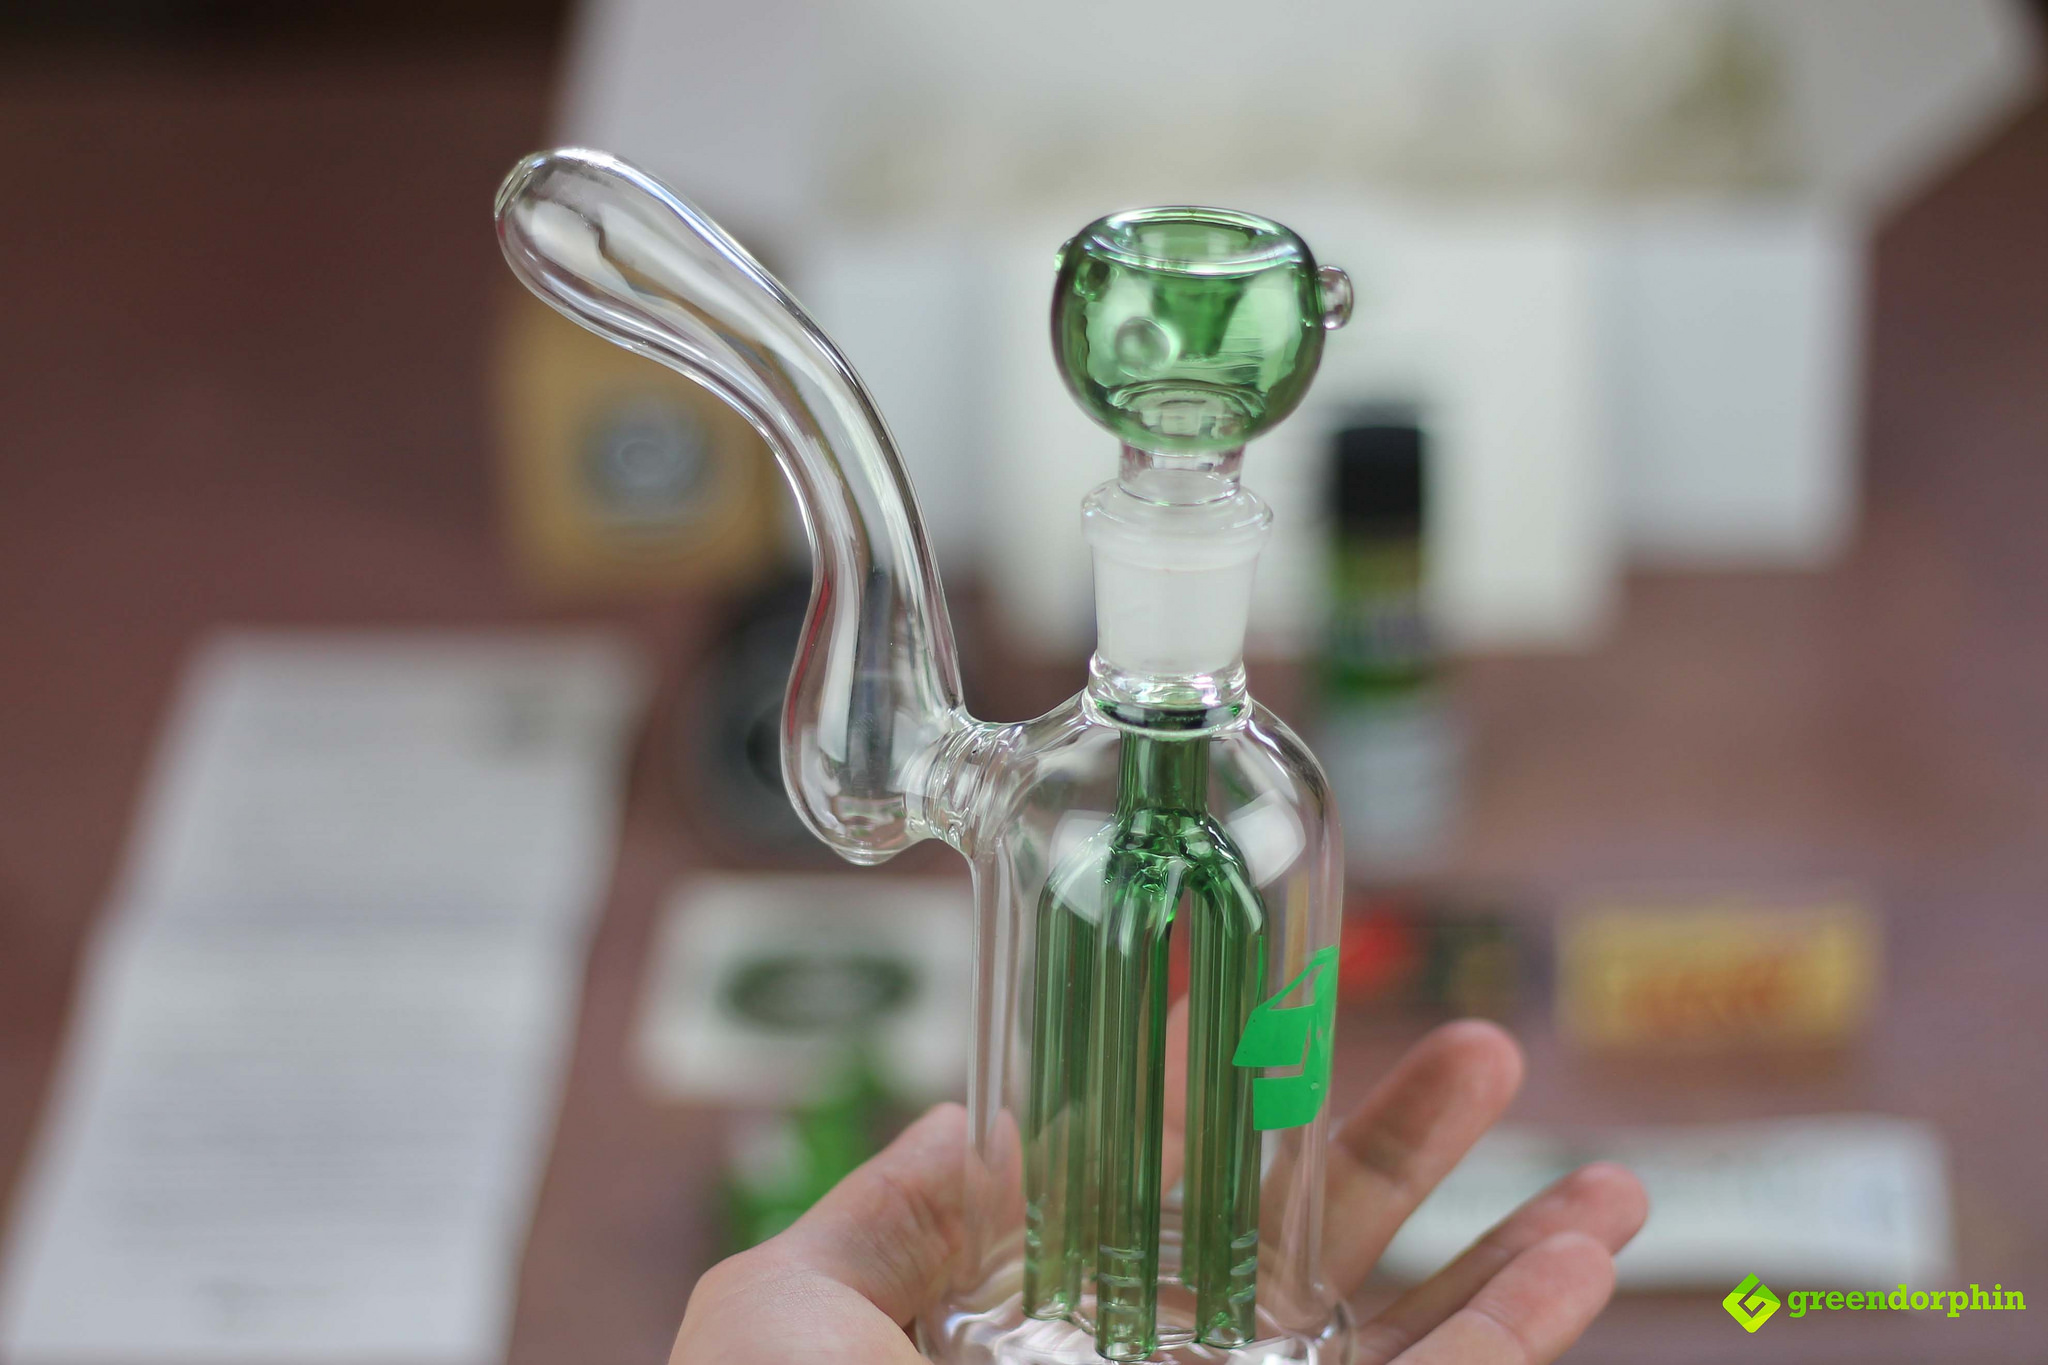 Weed Subscription Box Glass Piece